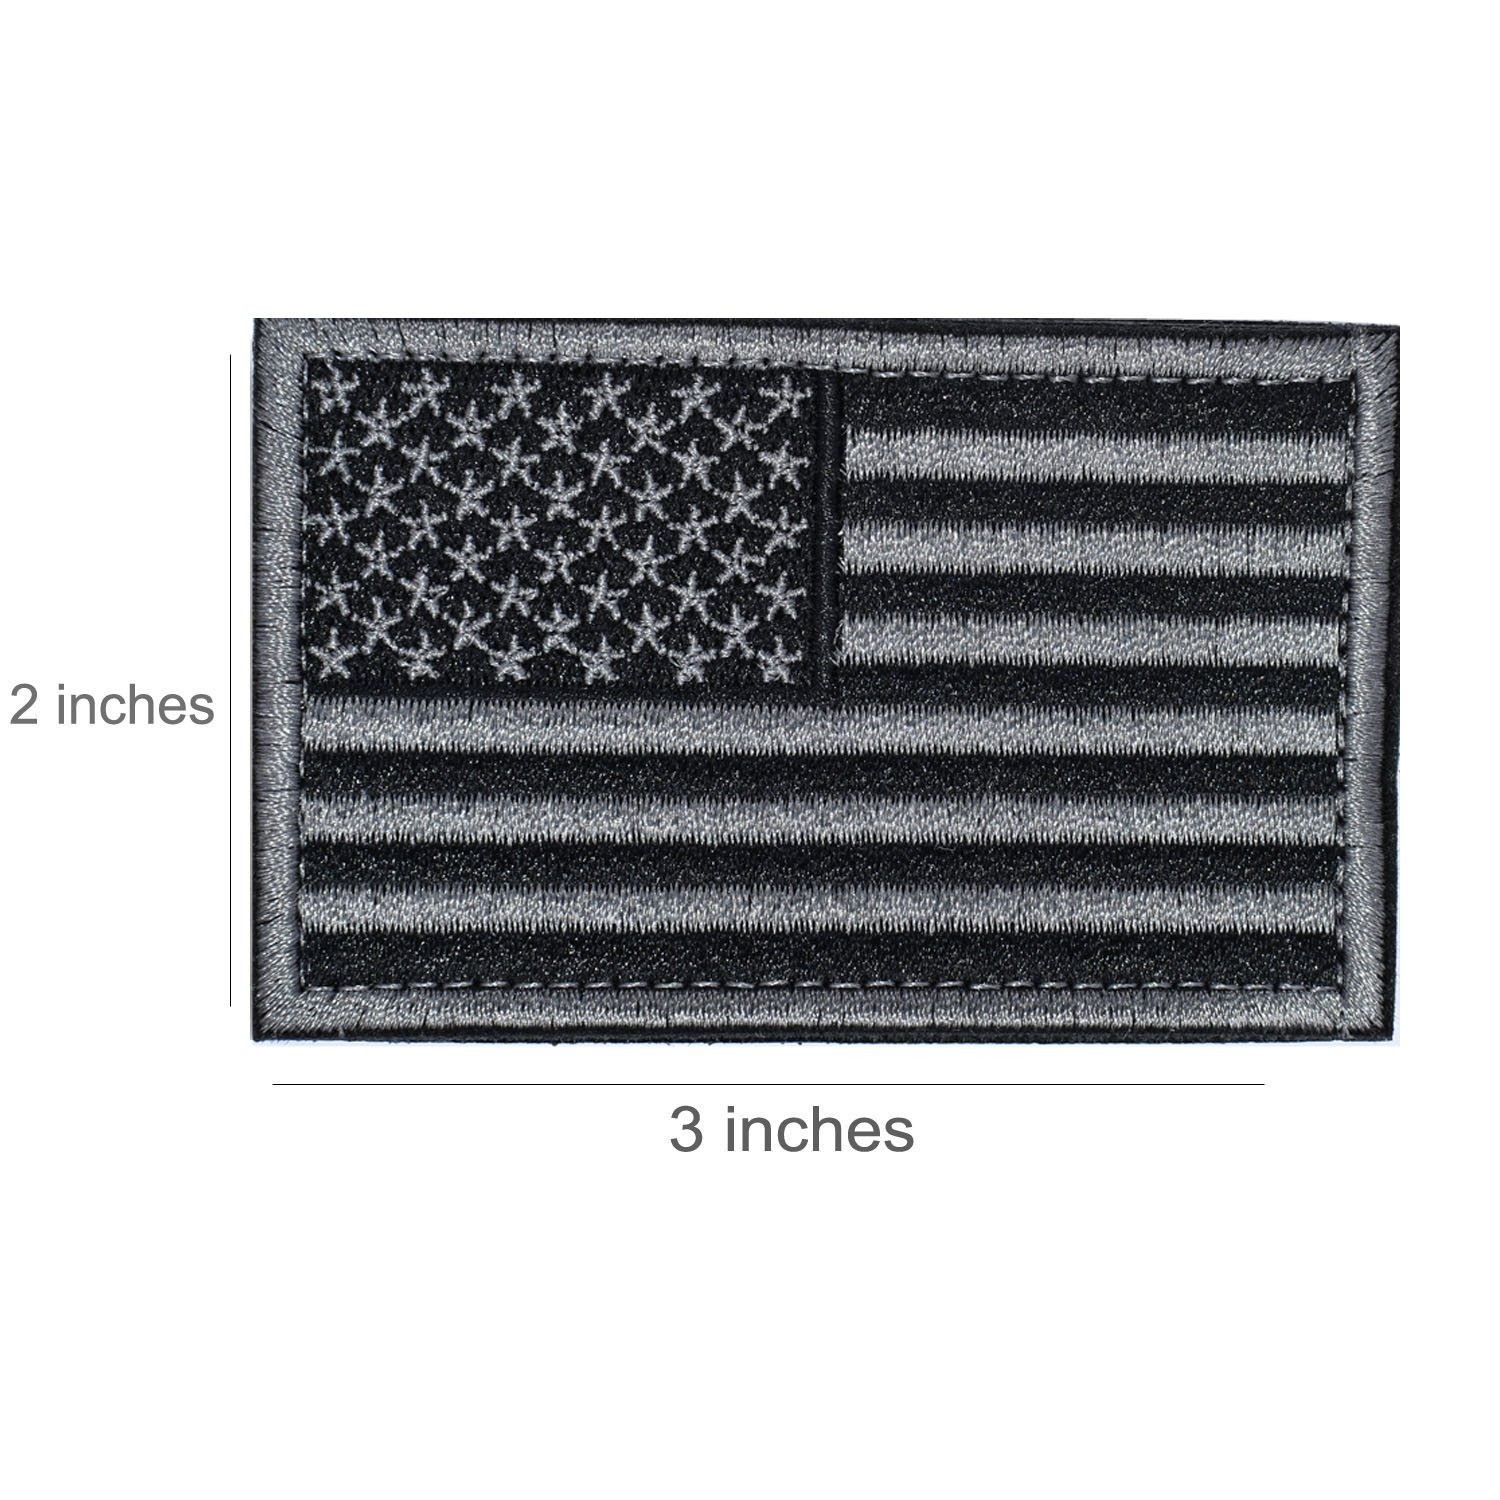 Black /& Gray American Flag US United States of America Military Uniform Emblem Patches 2 Pieces Tactical USA Flag Patch